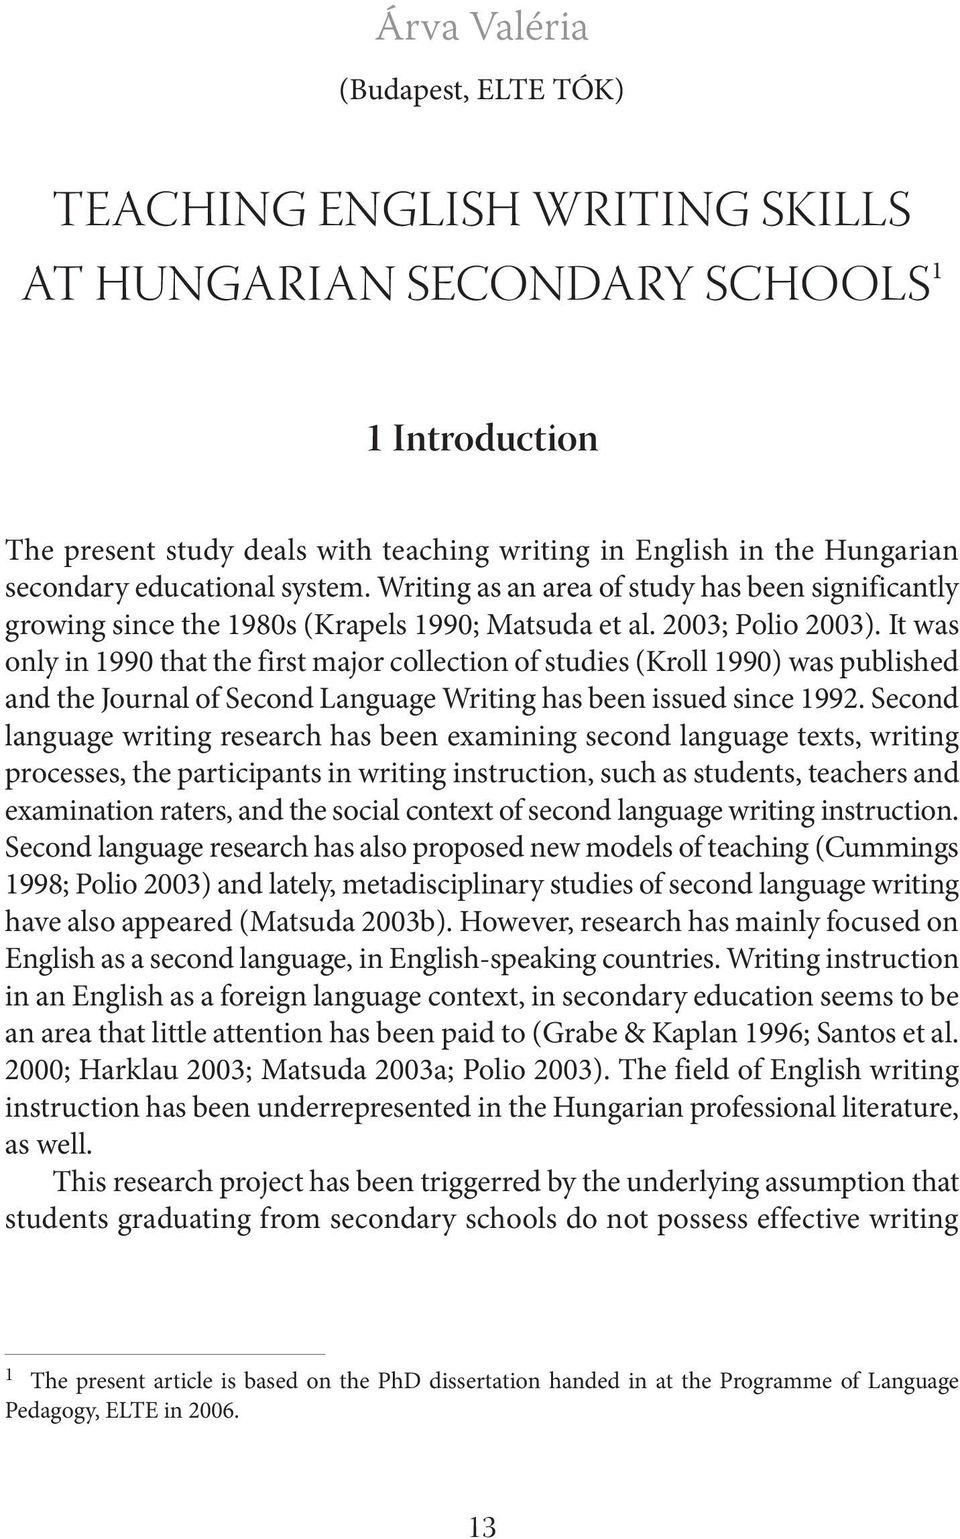 It was only in 1990 that the first major collection of studies (Kroll 1990) was published and the Journal of Second Language Writing has been issued since 1992.